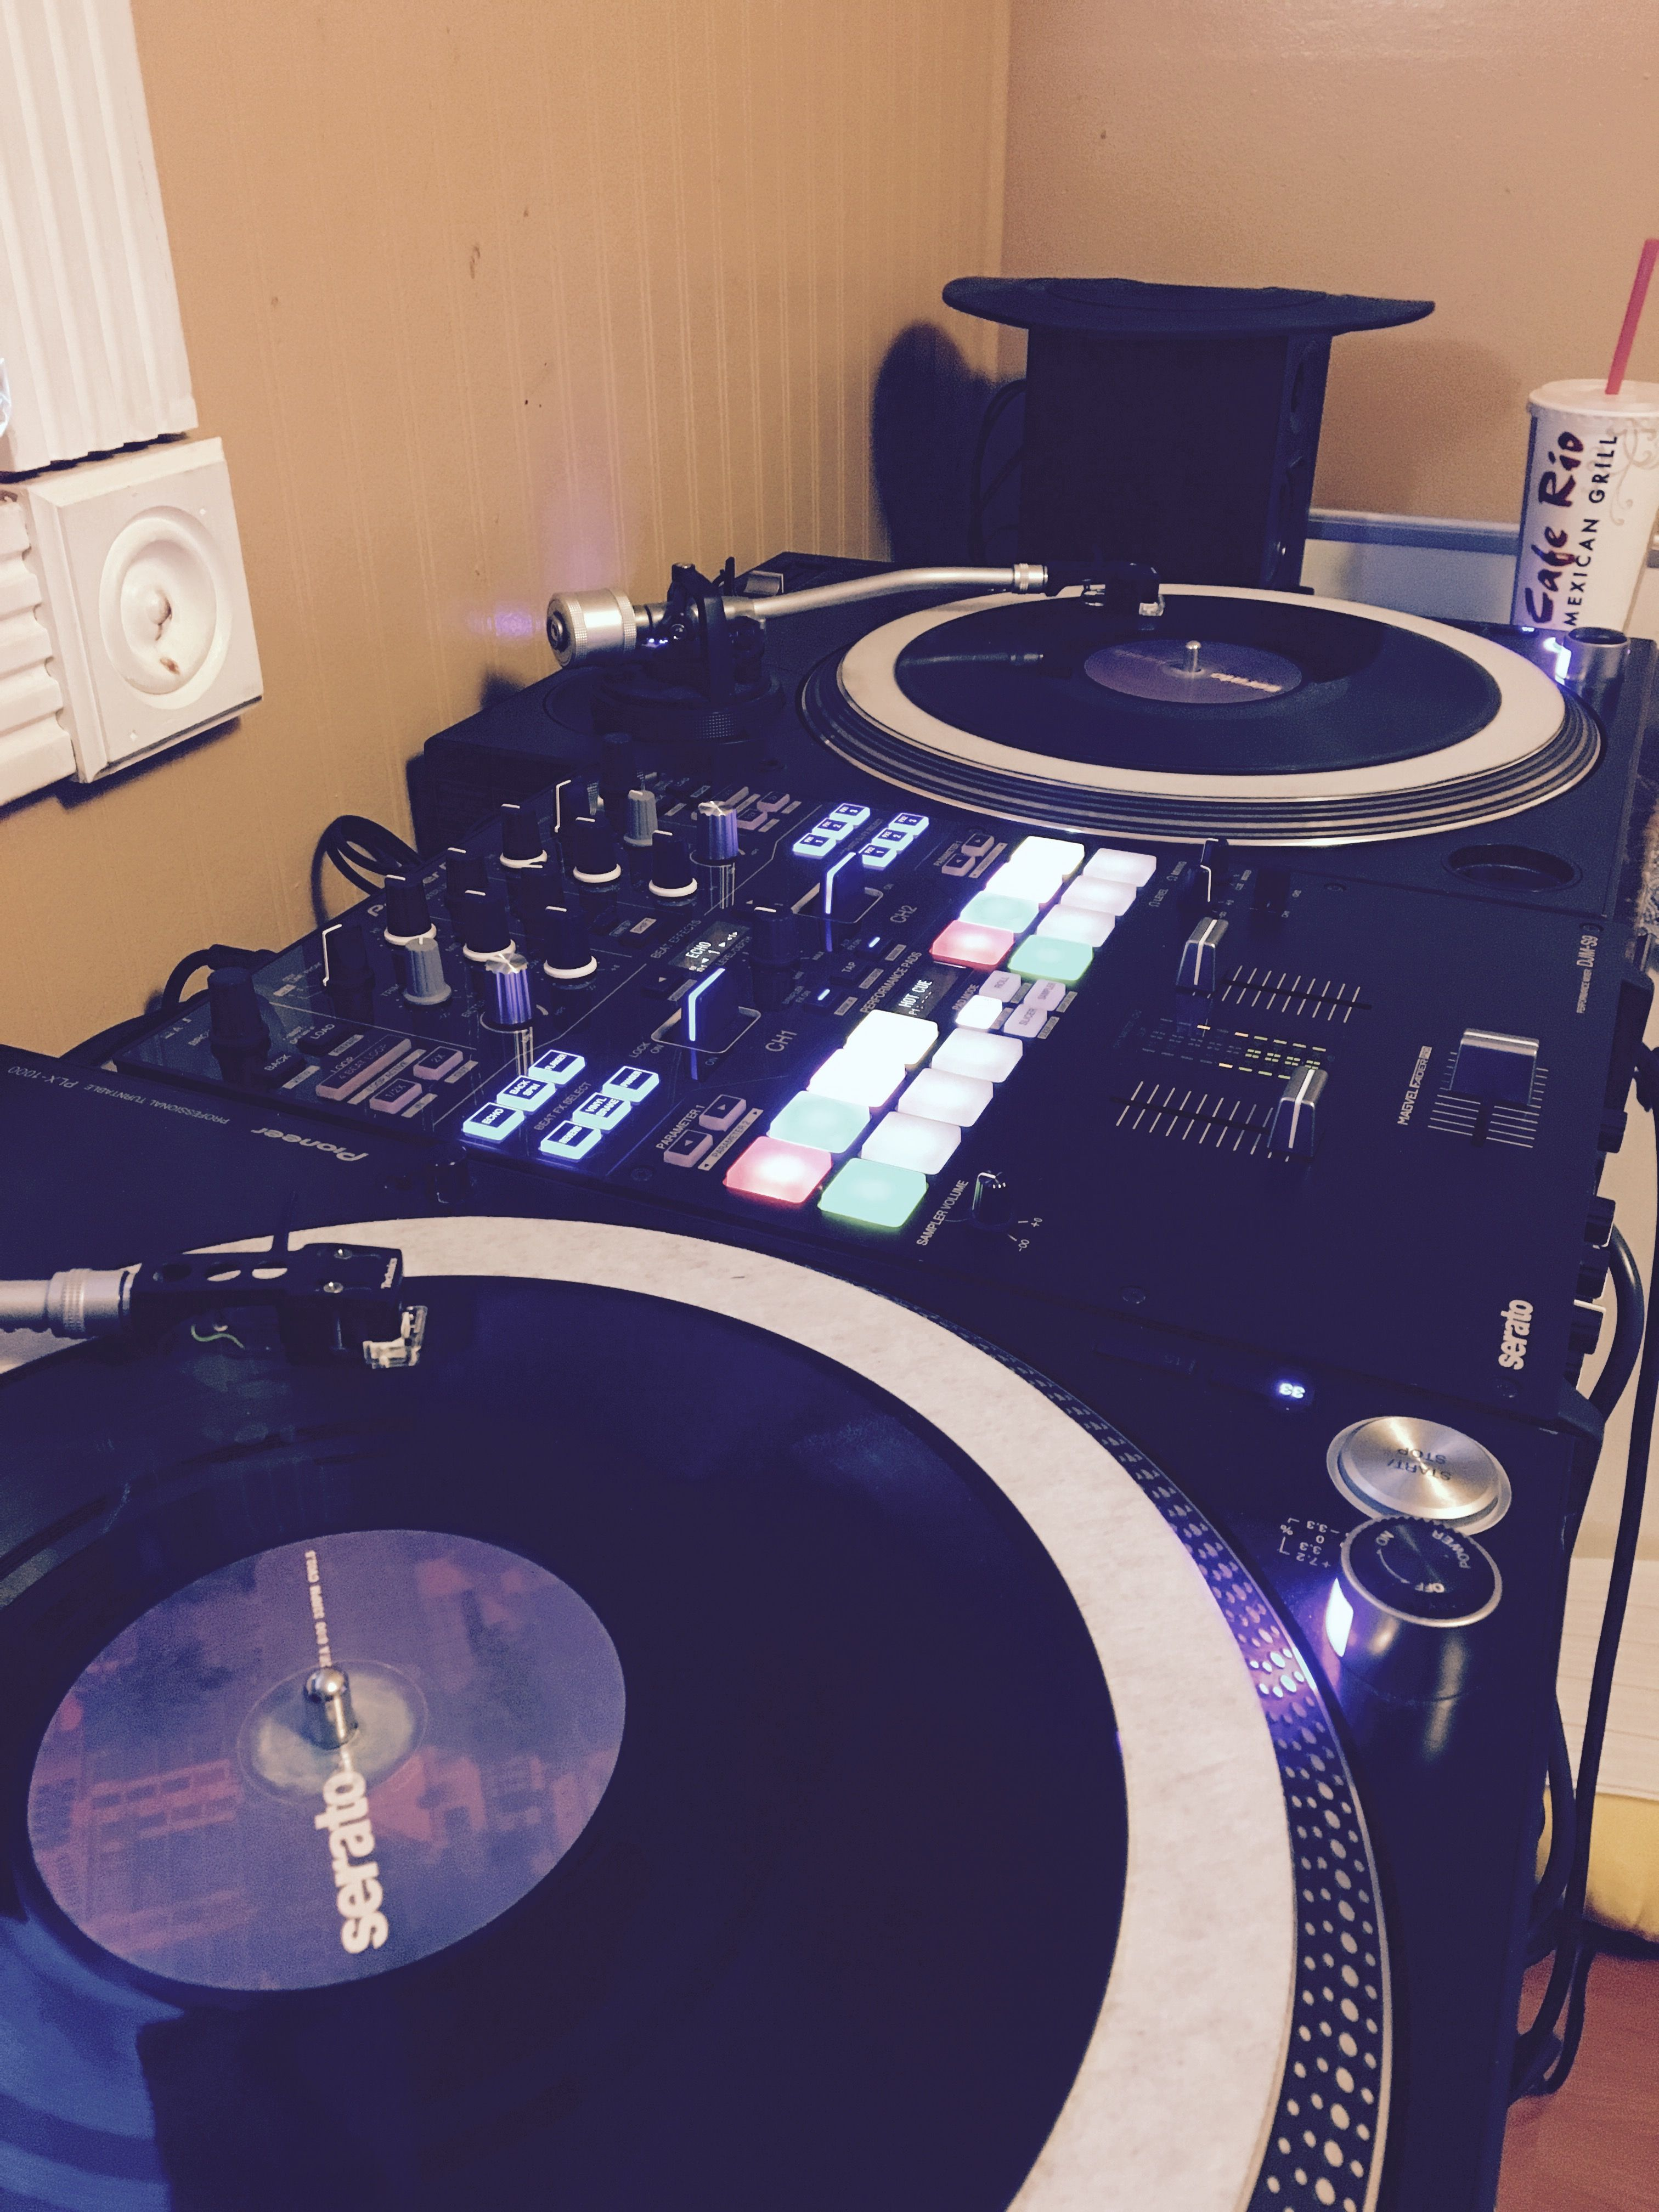 an all pioneer setup 2 pioneer plx 1000 turntables and 1 djm s9 mixer. Black Bedroom Furniture Sets. Home Design Ideas